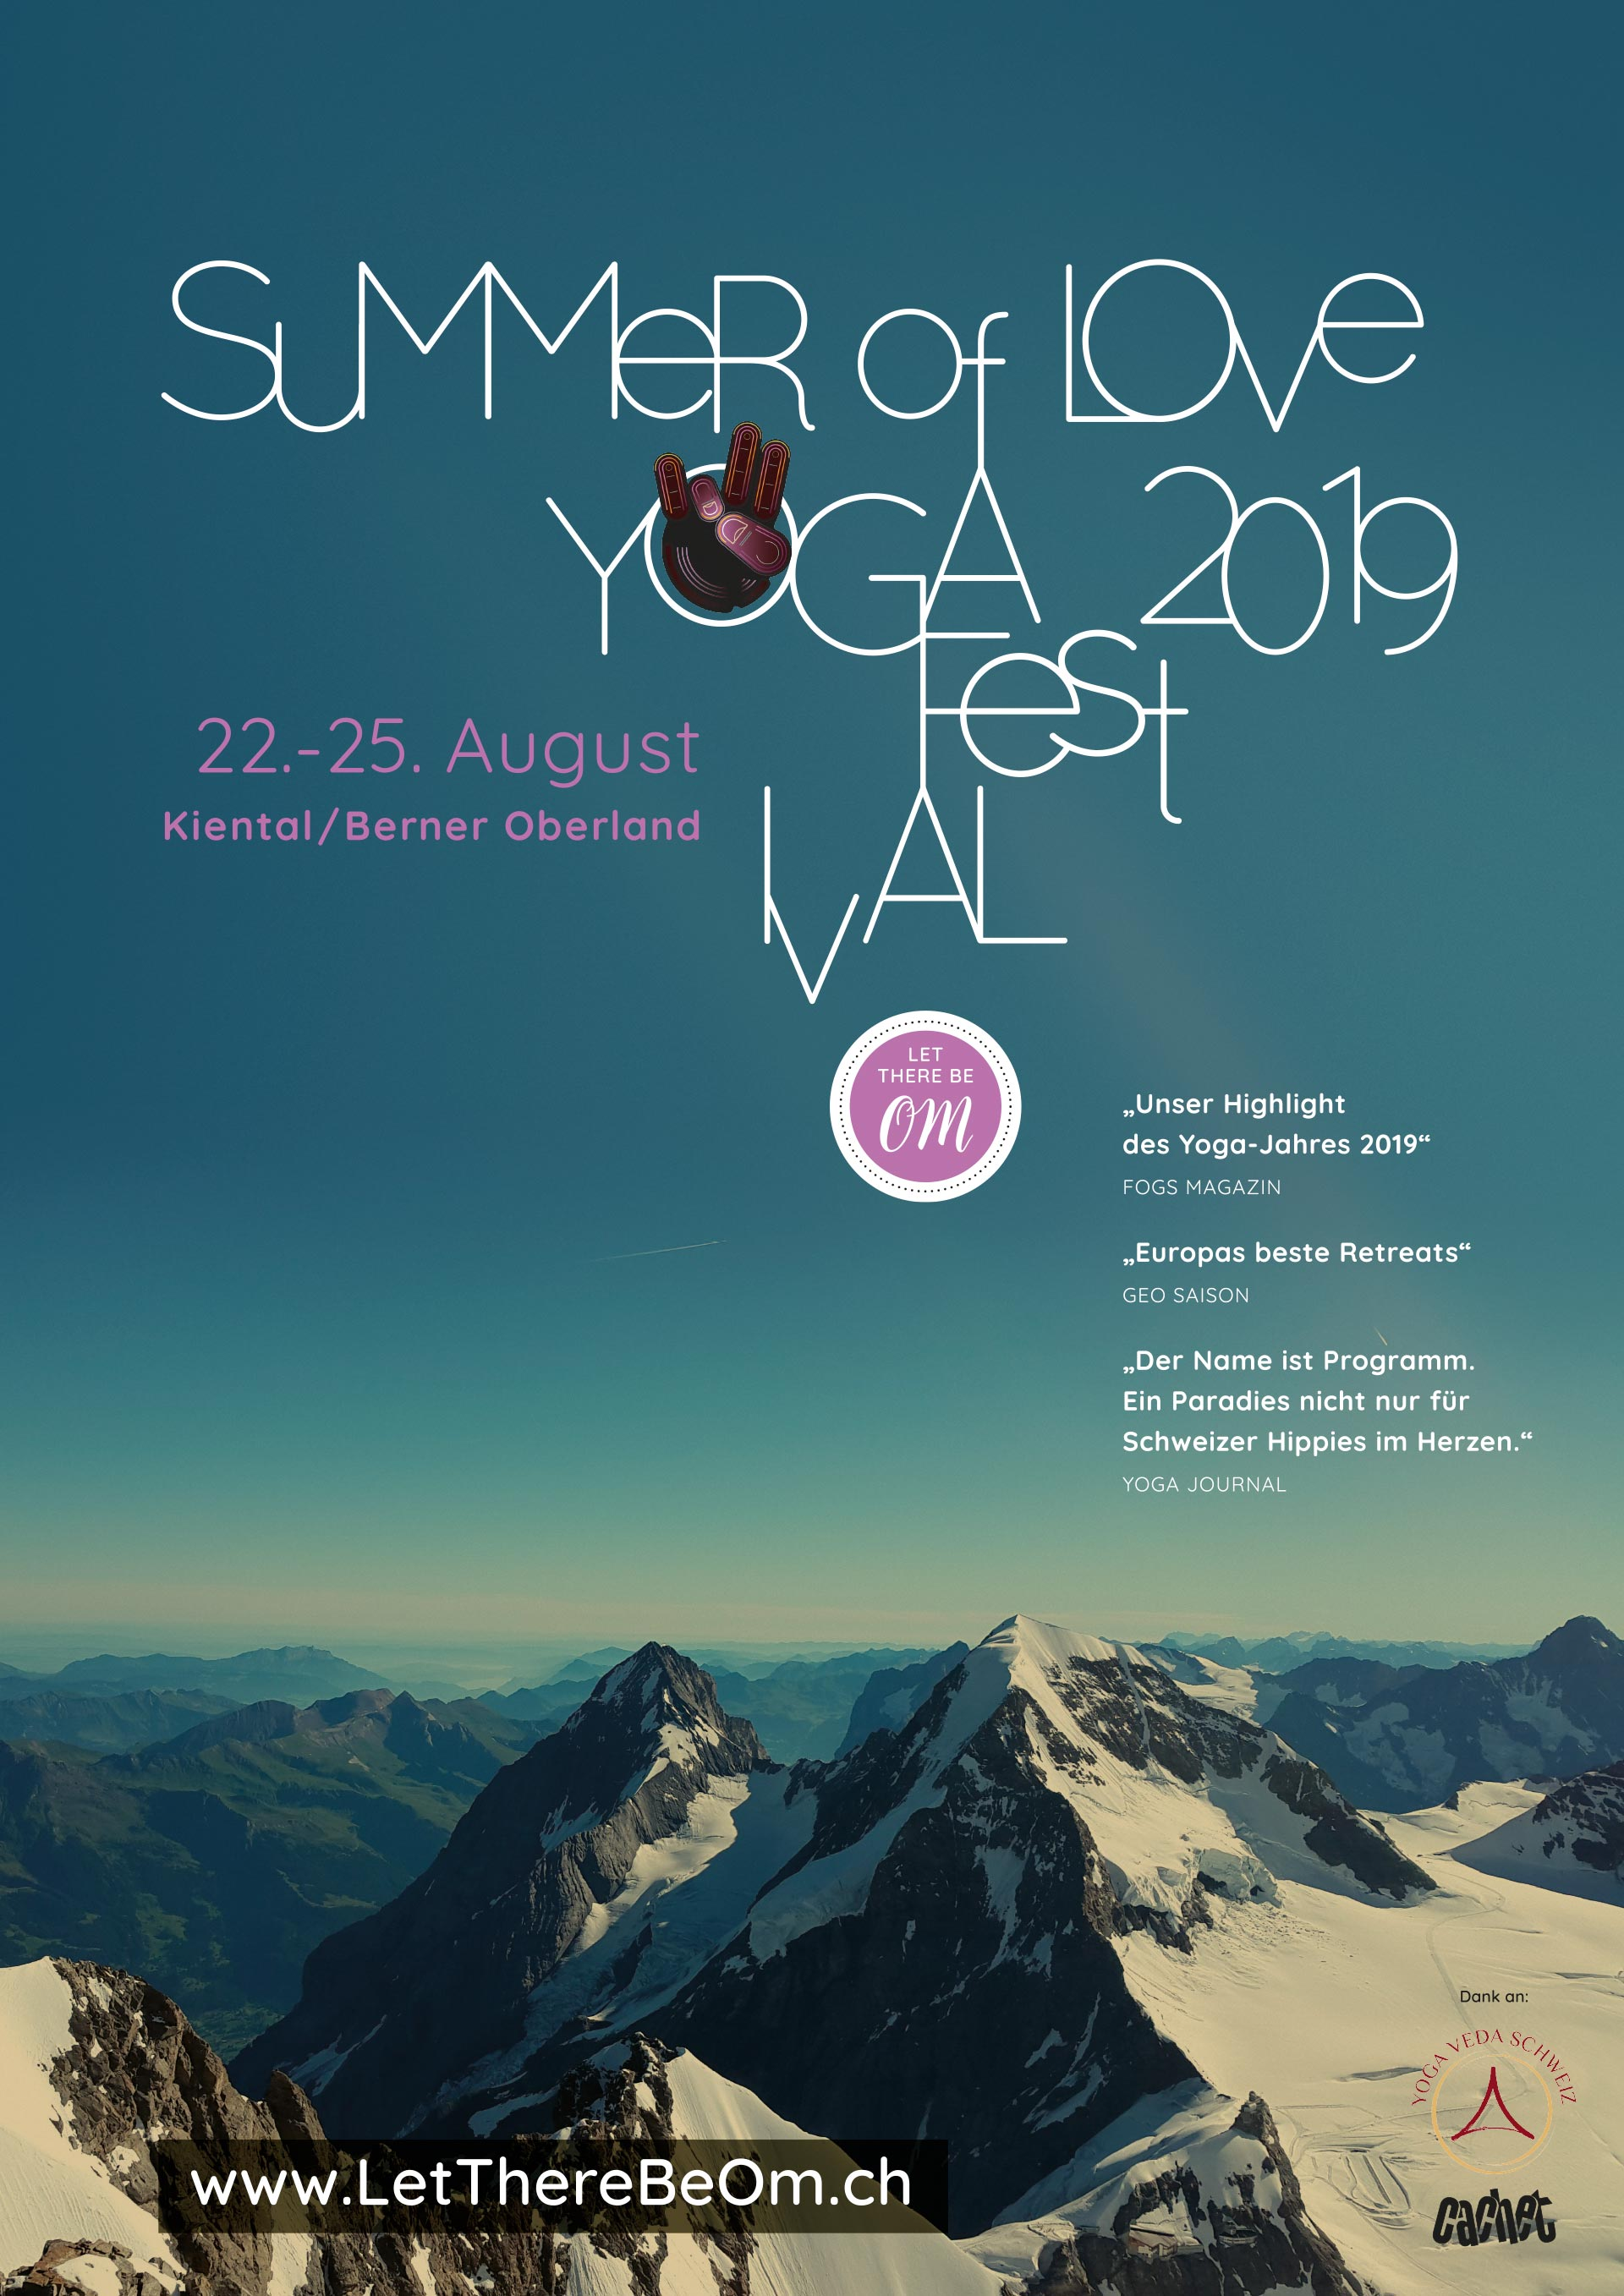 Summer of Love Yogafestival Poster